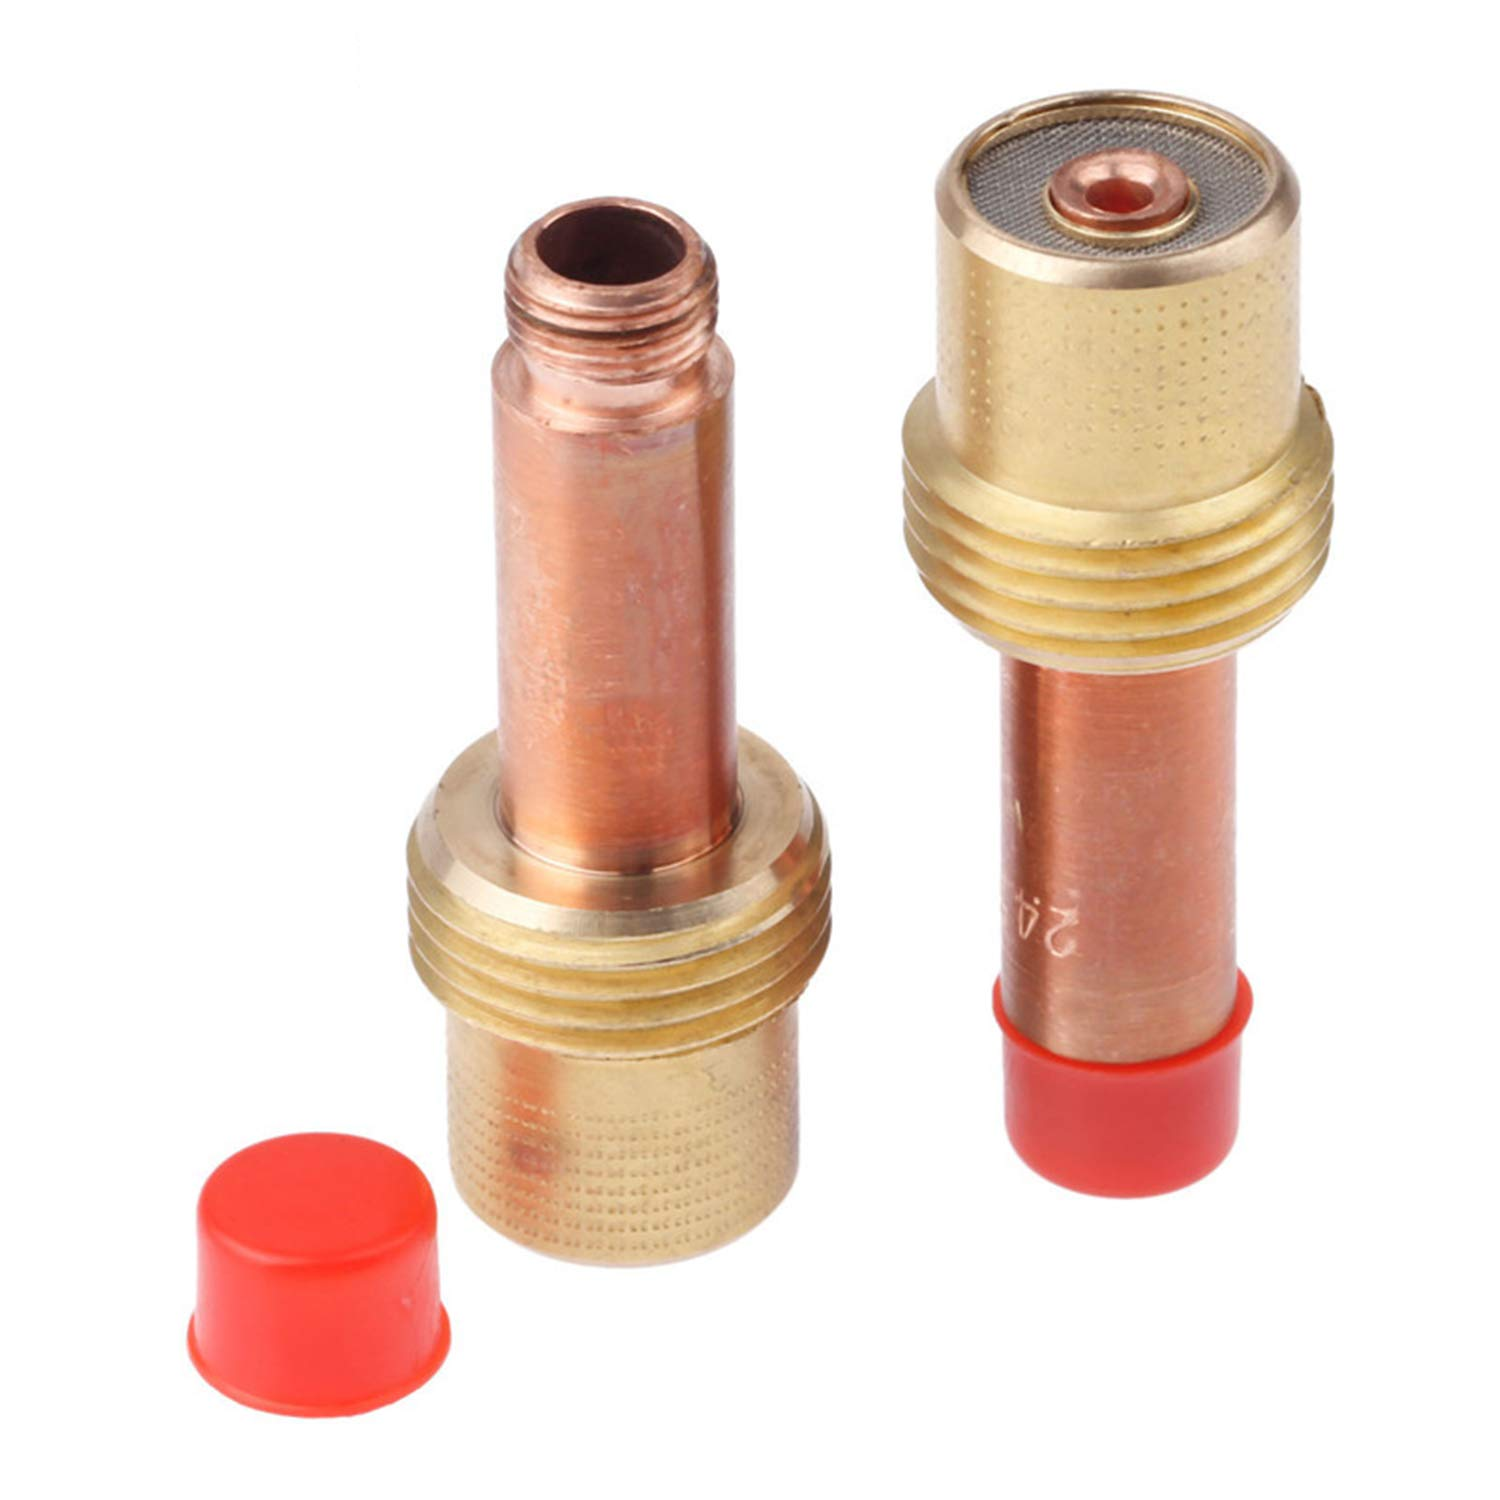 Body Gas Lens for Tig Welding Torch WP-17-18-26 Gas Lens Collet Bodies 1.6mm 1//16 5Pcs 45V25 Collet